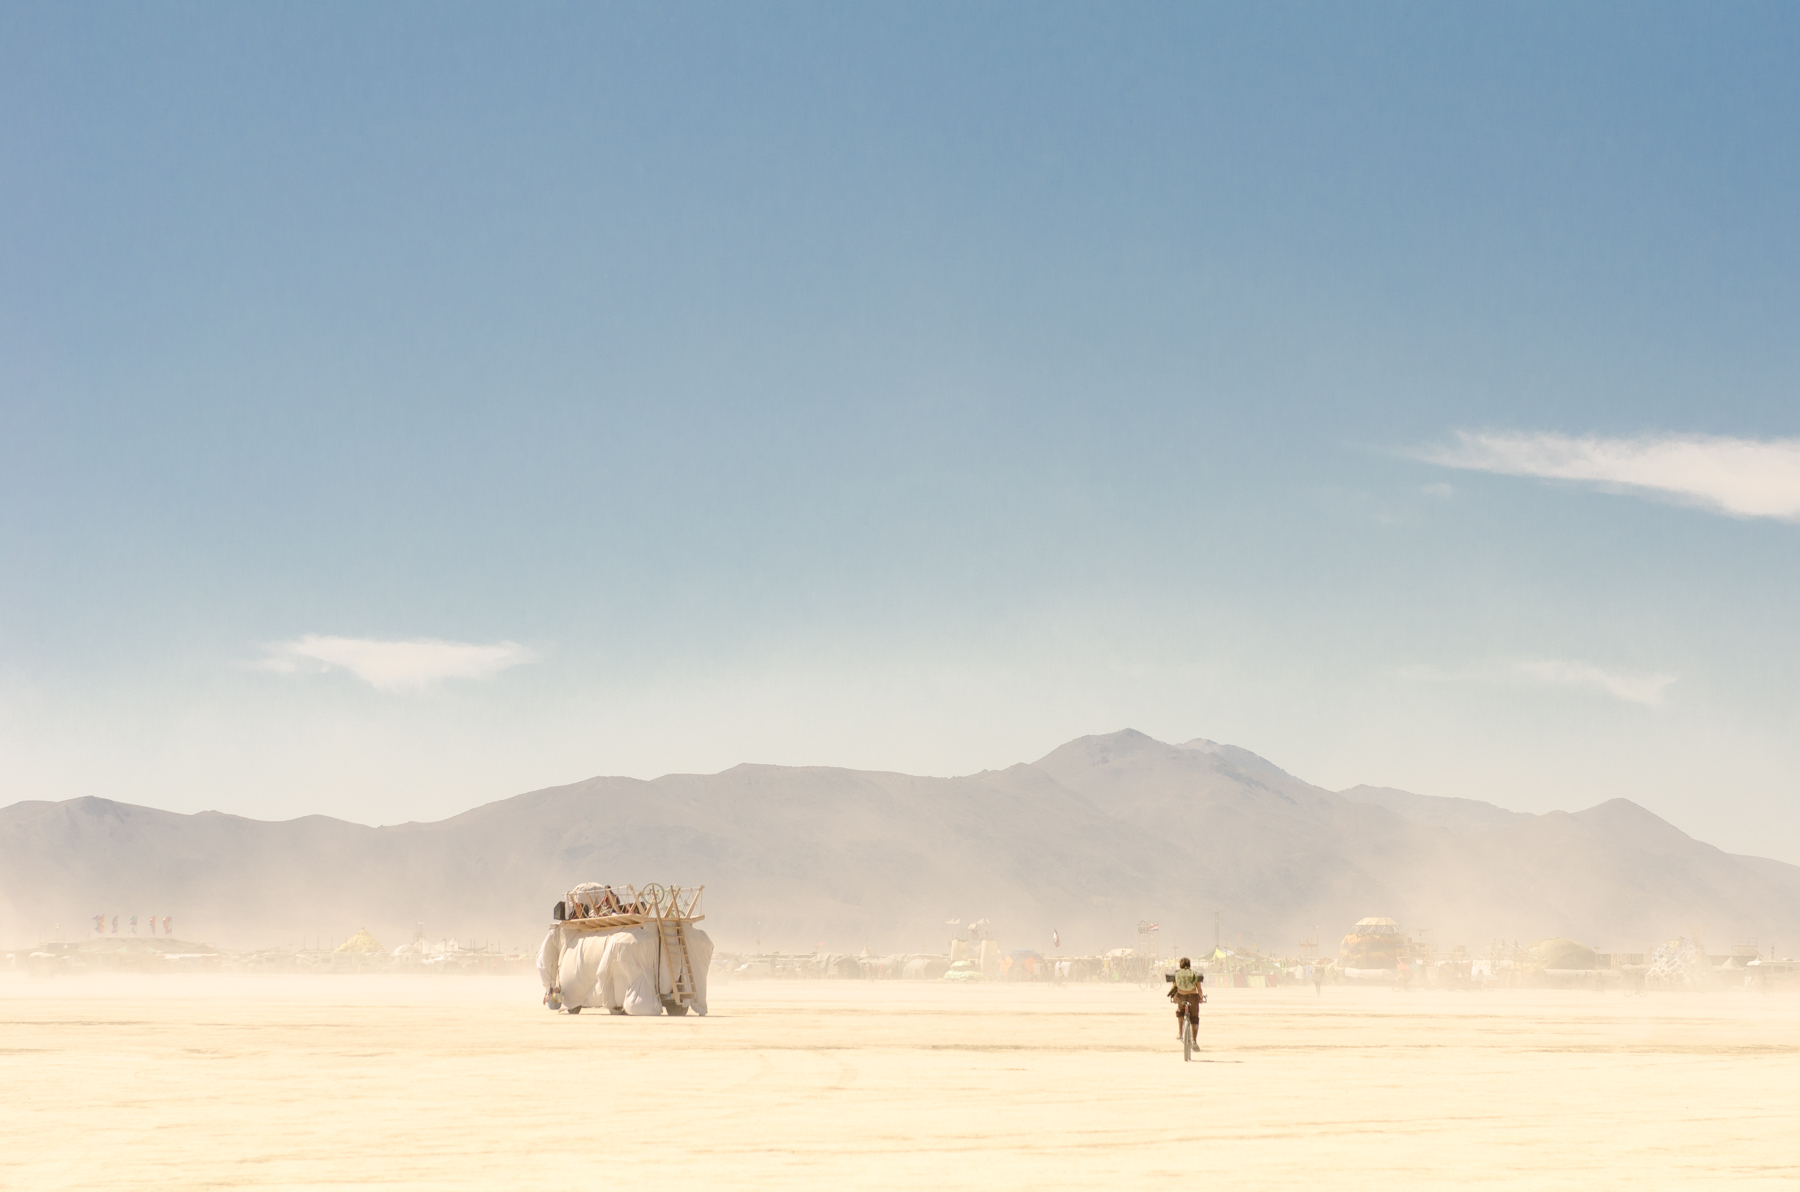 Dust storms at Burning Man are beautiful but painful on the eyes and the camera lenses.